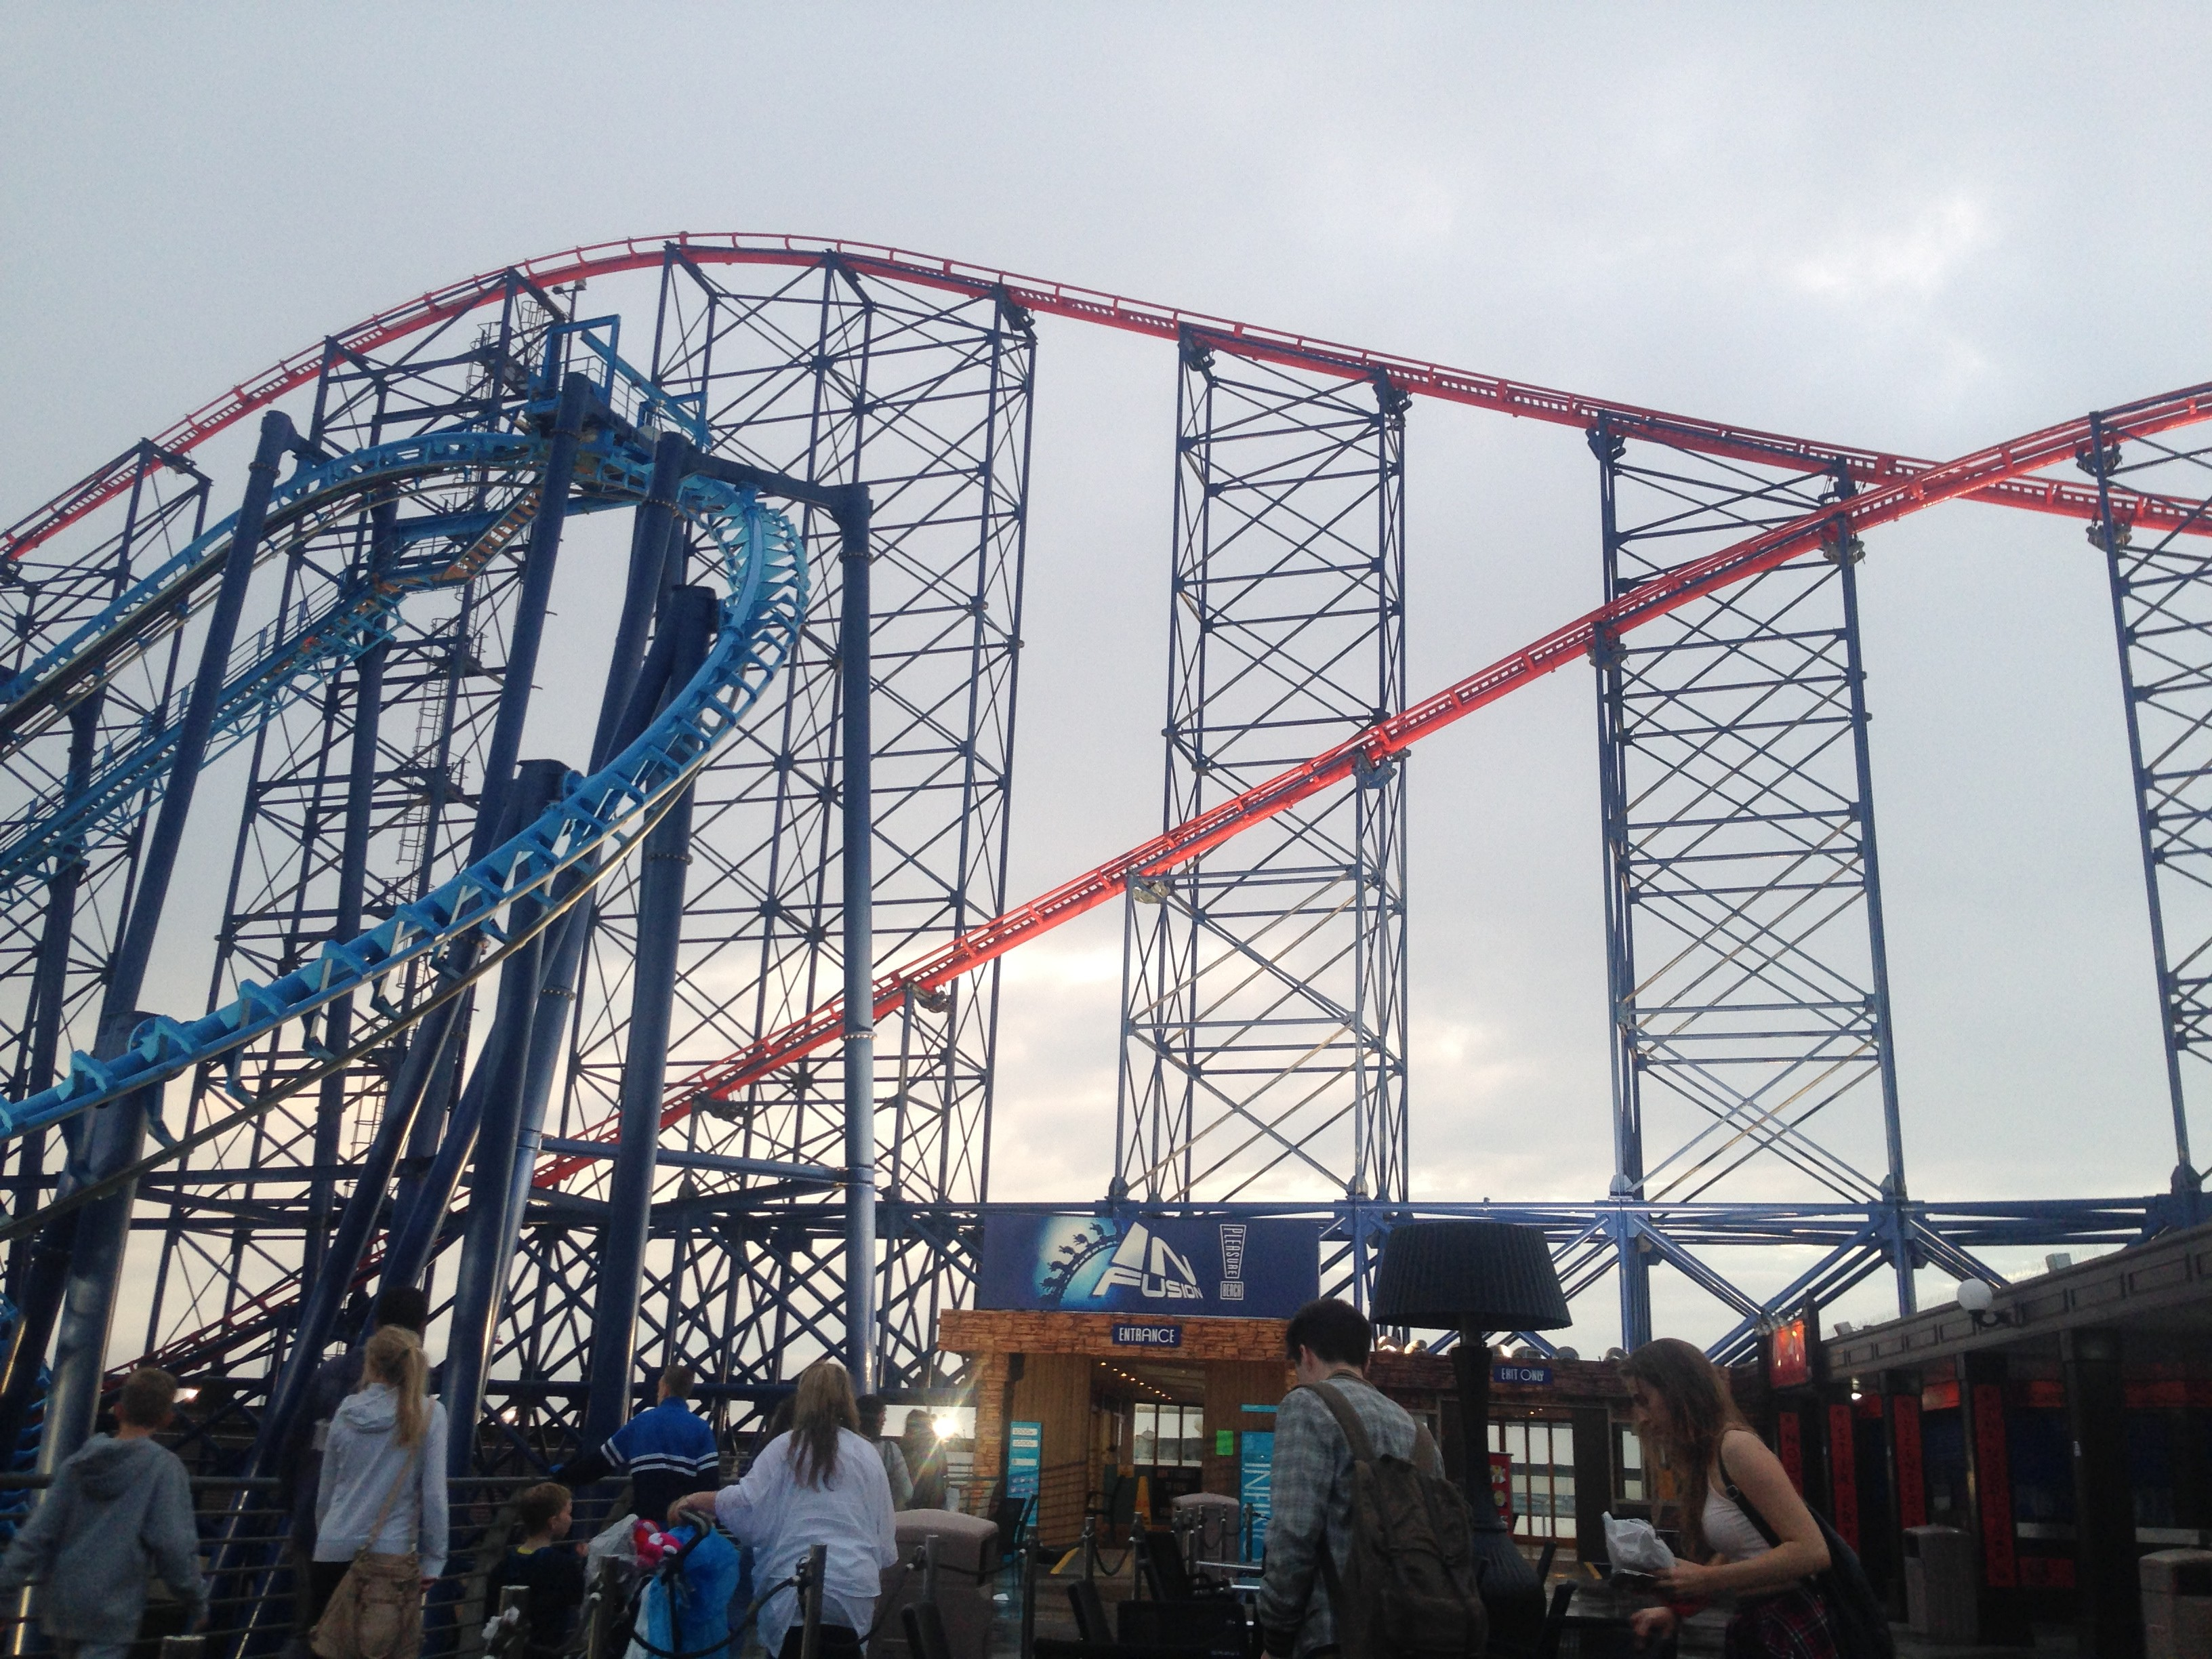 Blackpool Pleasure Beach 2014